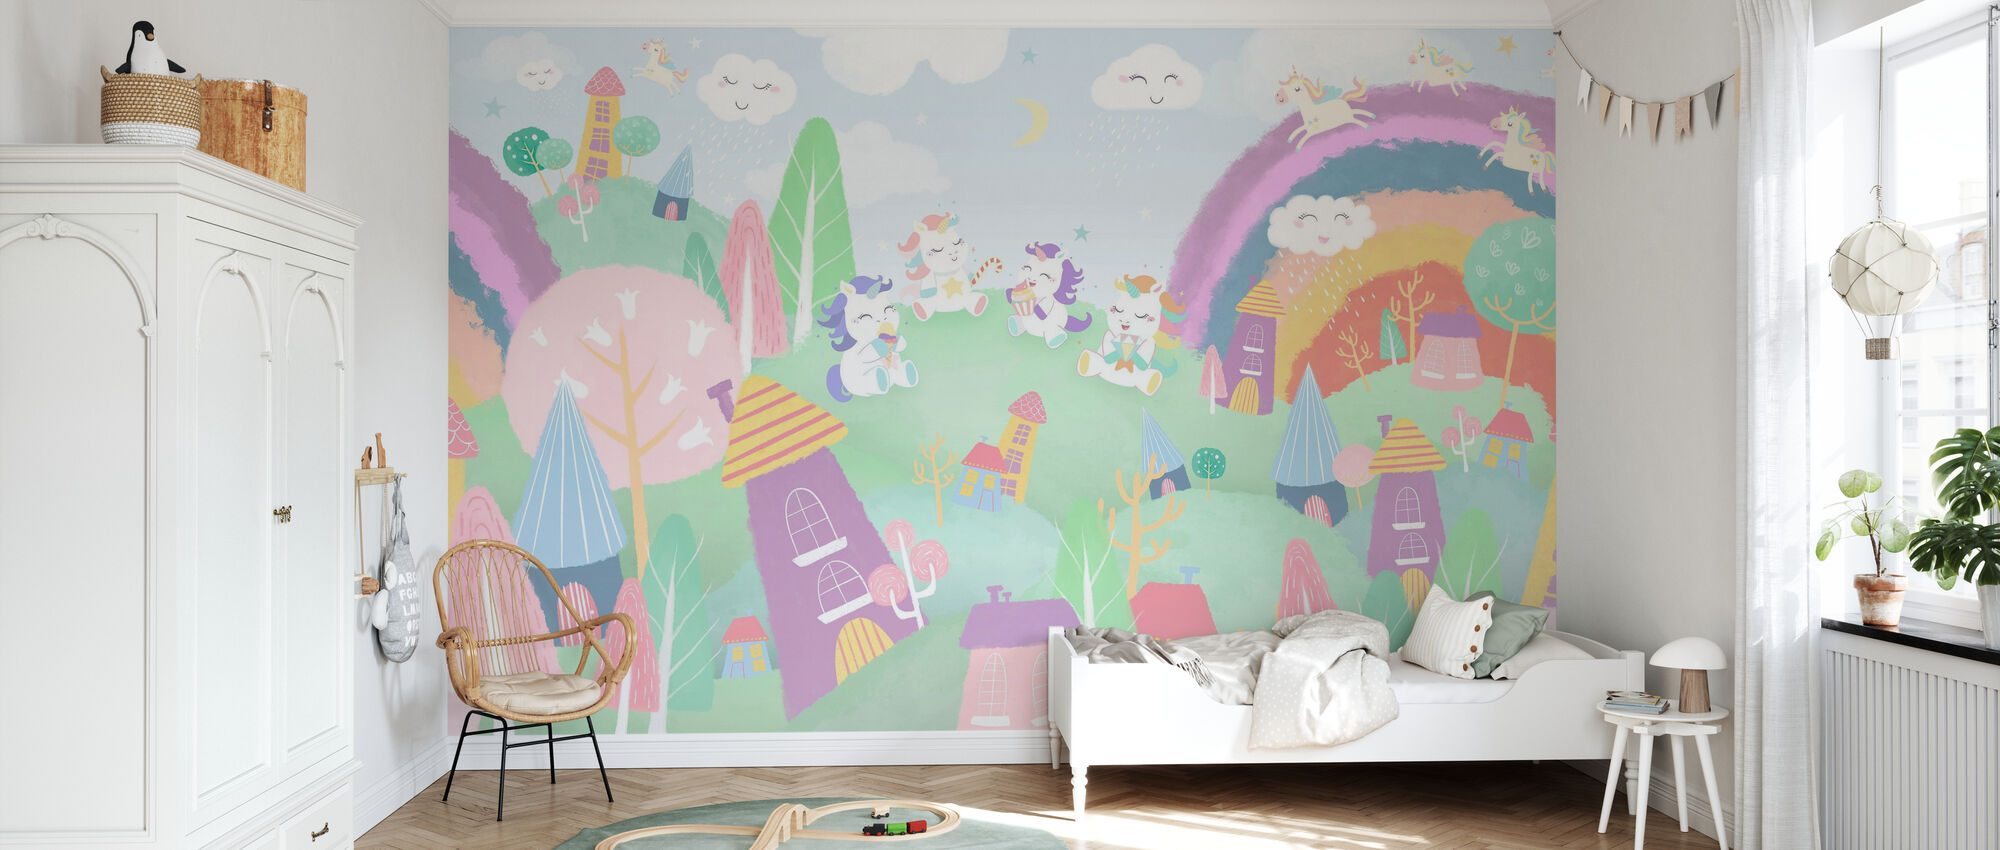 Unicorn Village - Wallpaper - Kids Room